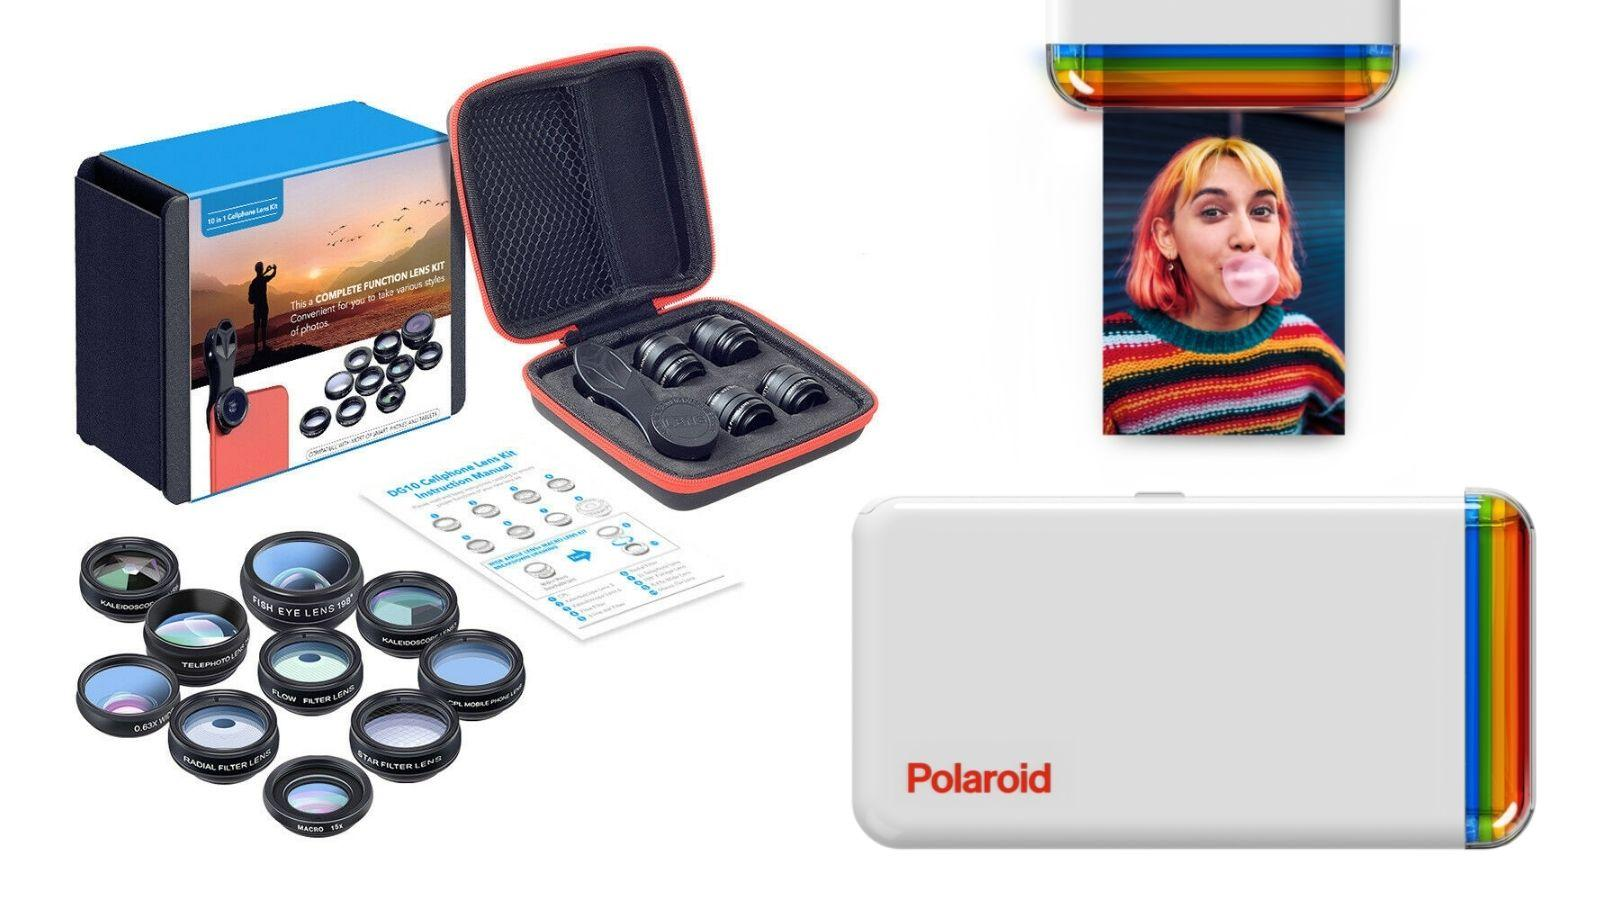 Set of small mobile camera lenses and a small white printer the size of a large mobile phone with text Polaroid written on it